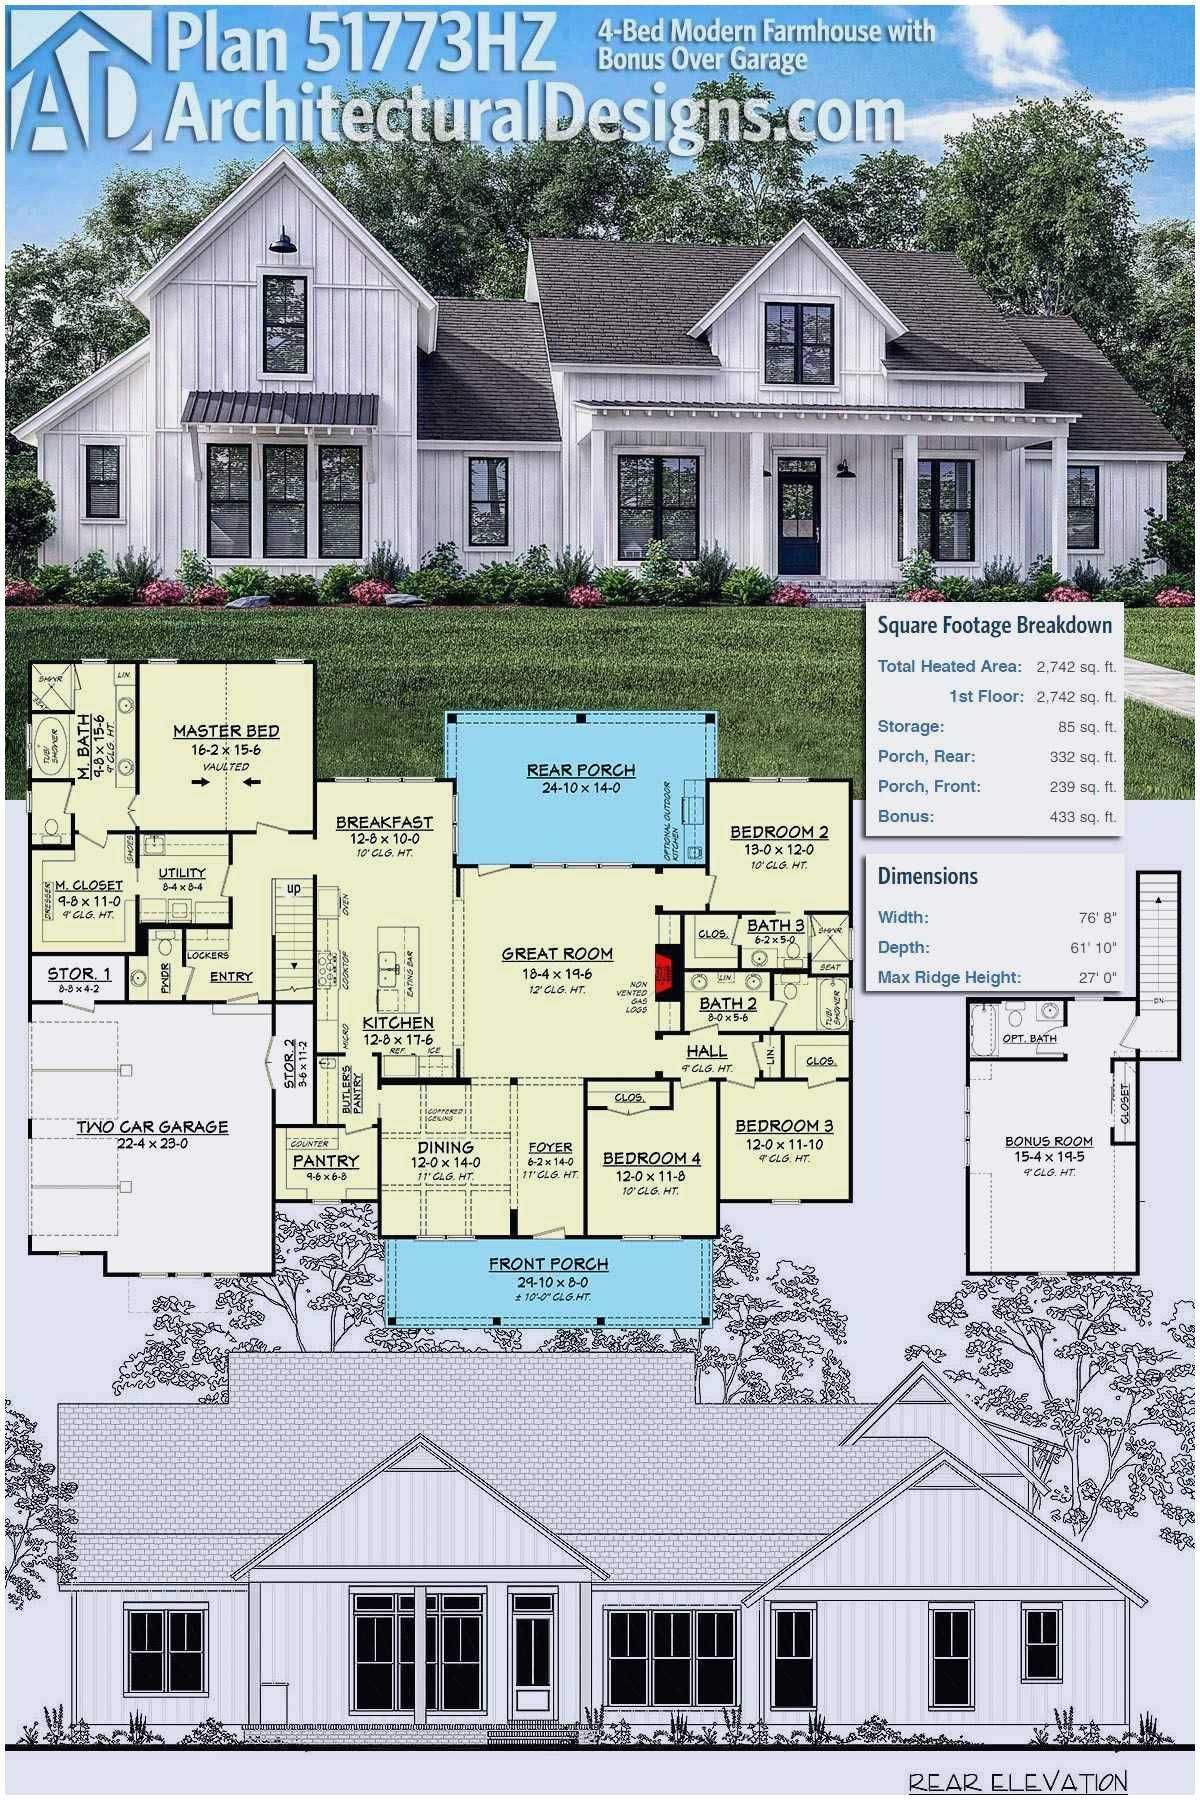 Country House Single Story Farmhouse Floor Plans Best Of Country House Single Story F Modern Farmhouse Plans Farmhouse Floor Plans Modern Farmhouse Floorplan